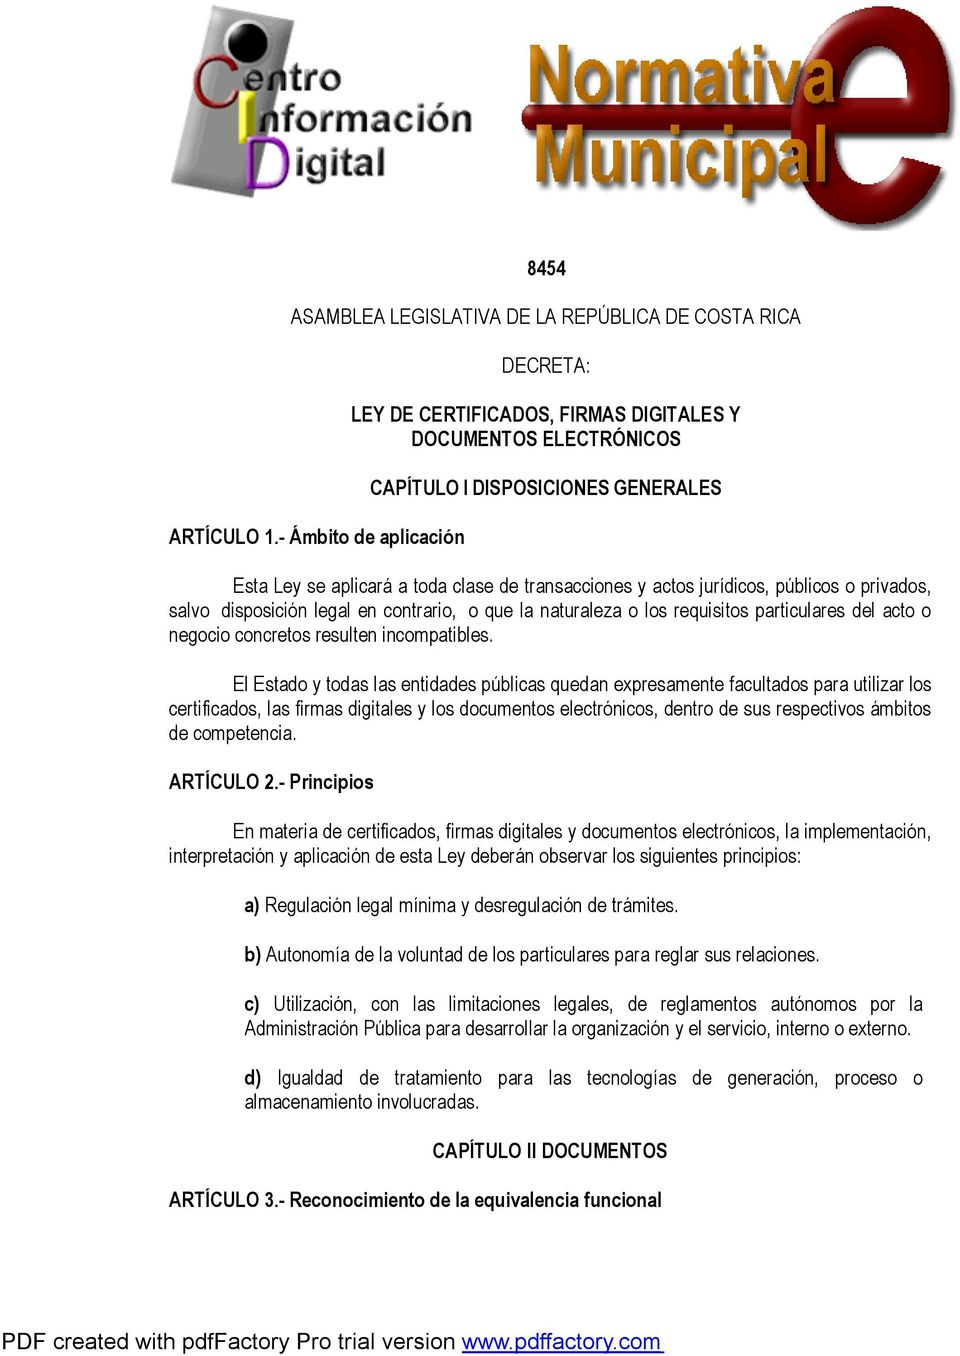 jurídicos, públicos o privados, salvo disposición legal en contrario, o que la naturaleza o los requisitos particulares del acto o negocio concretos resulten incompatibles.